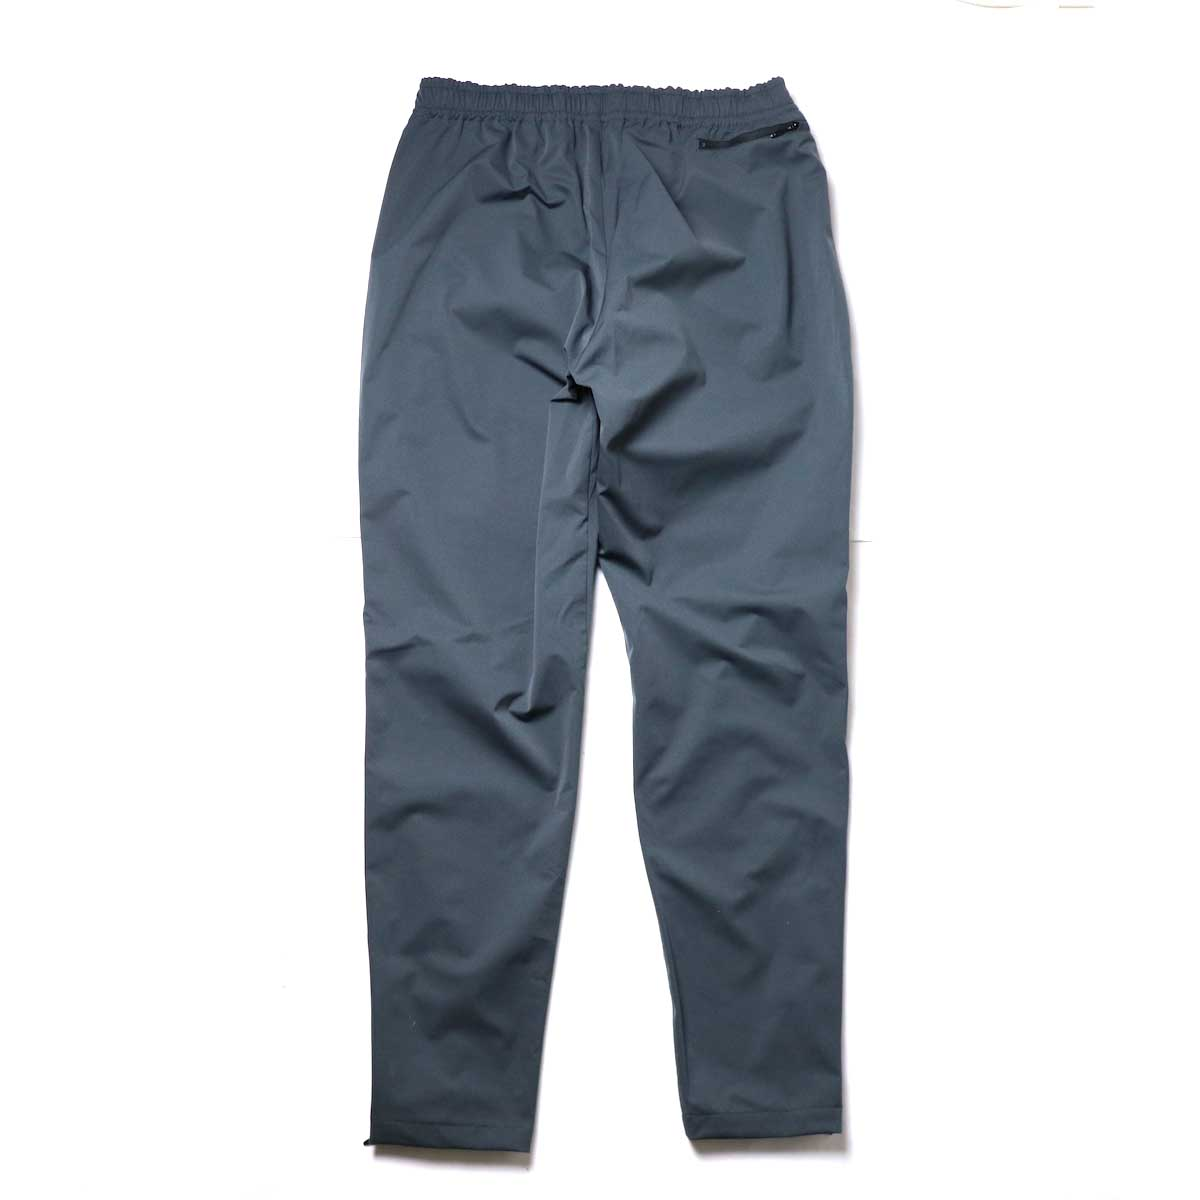 South2 West8 / Boulder Pant -Poly Stretch Twill (Charcoal)背面